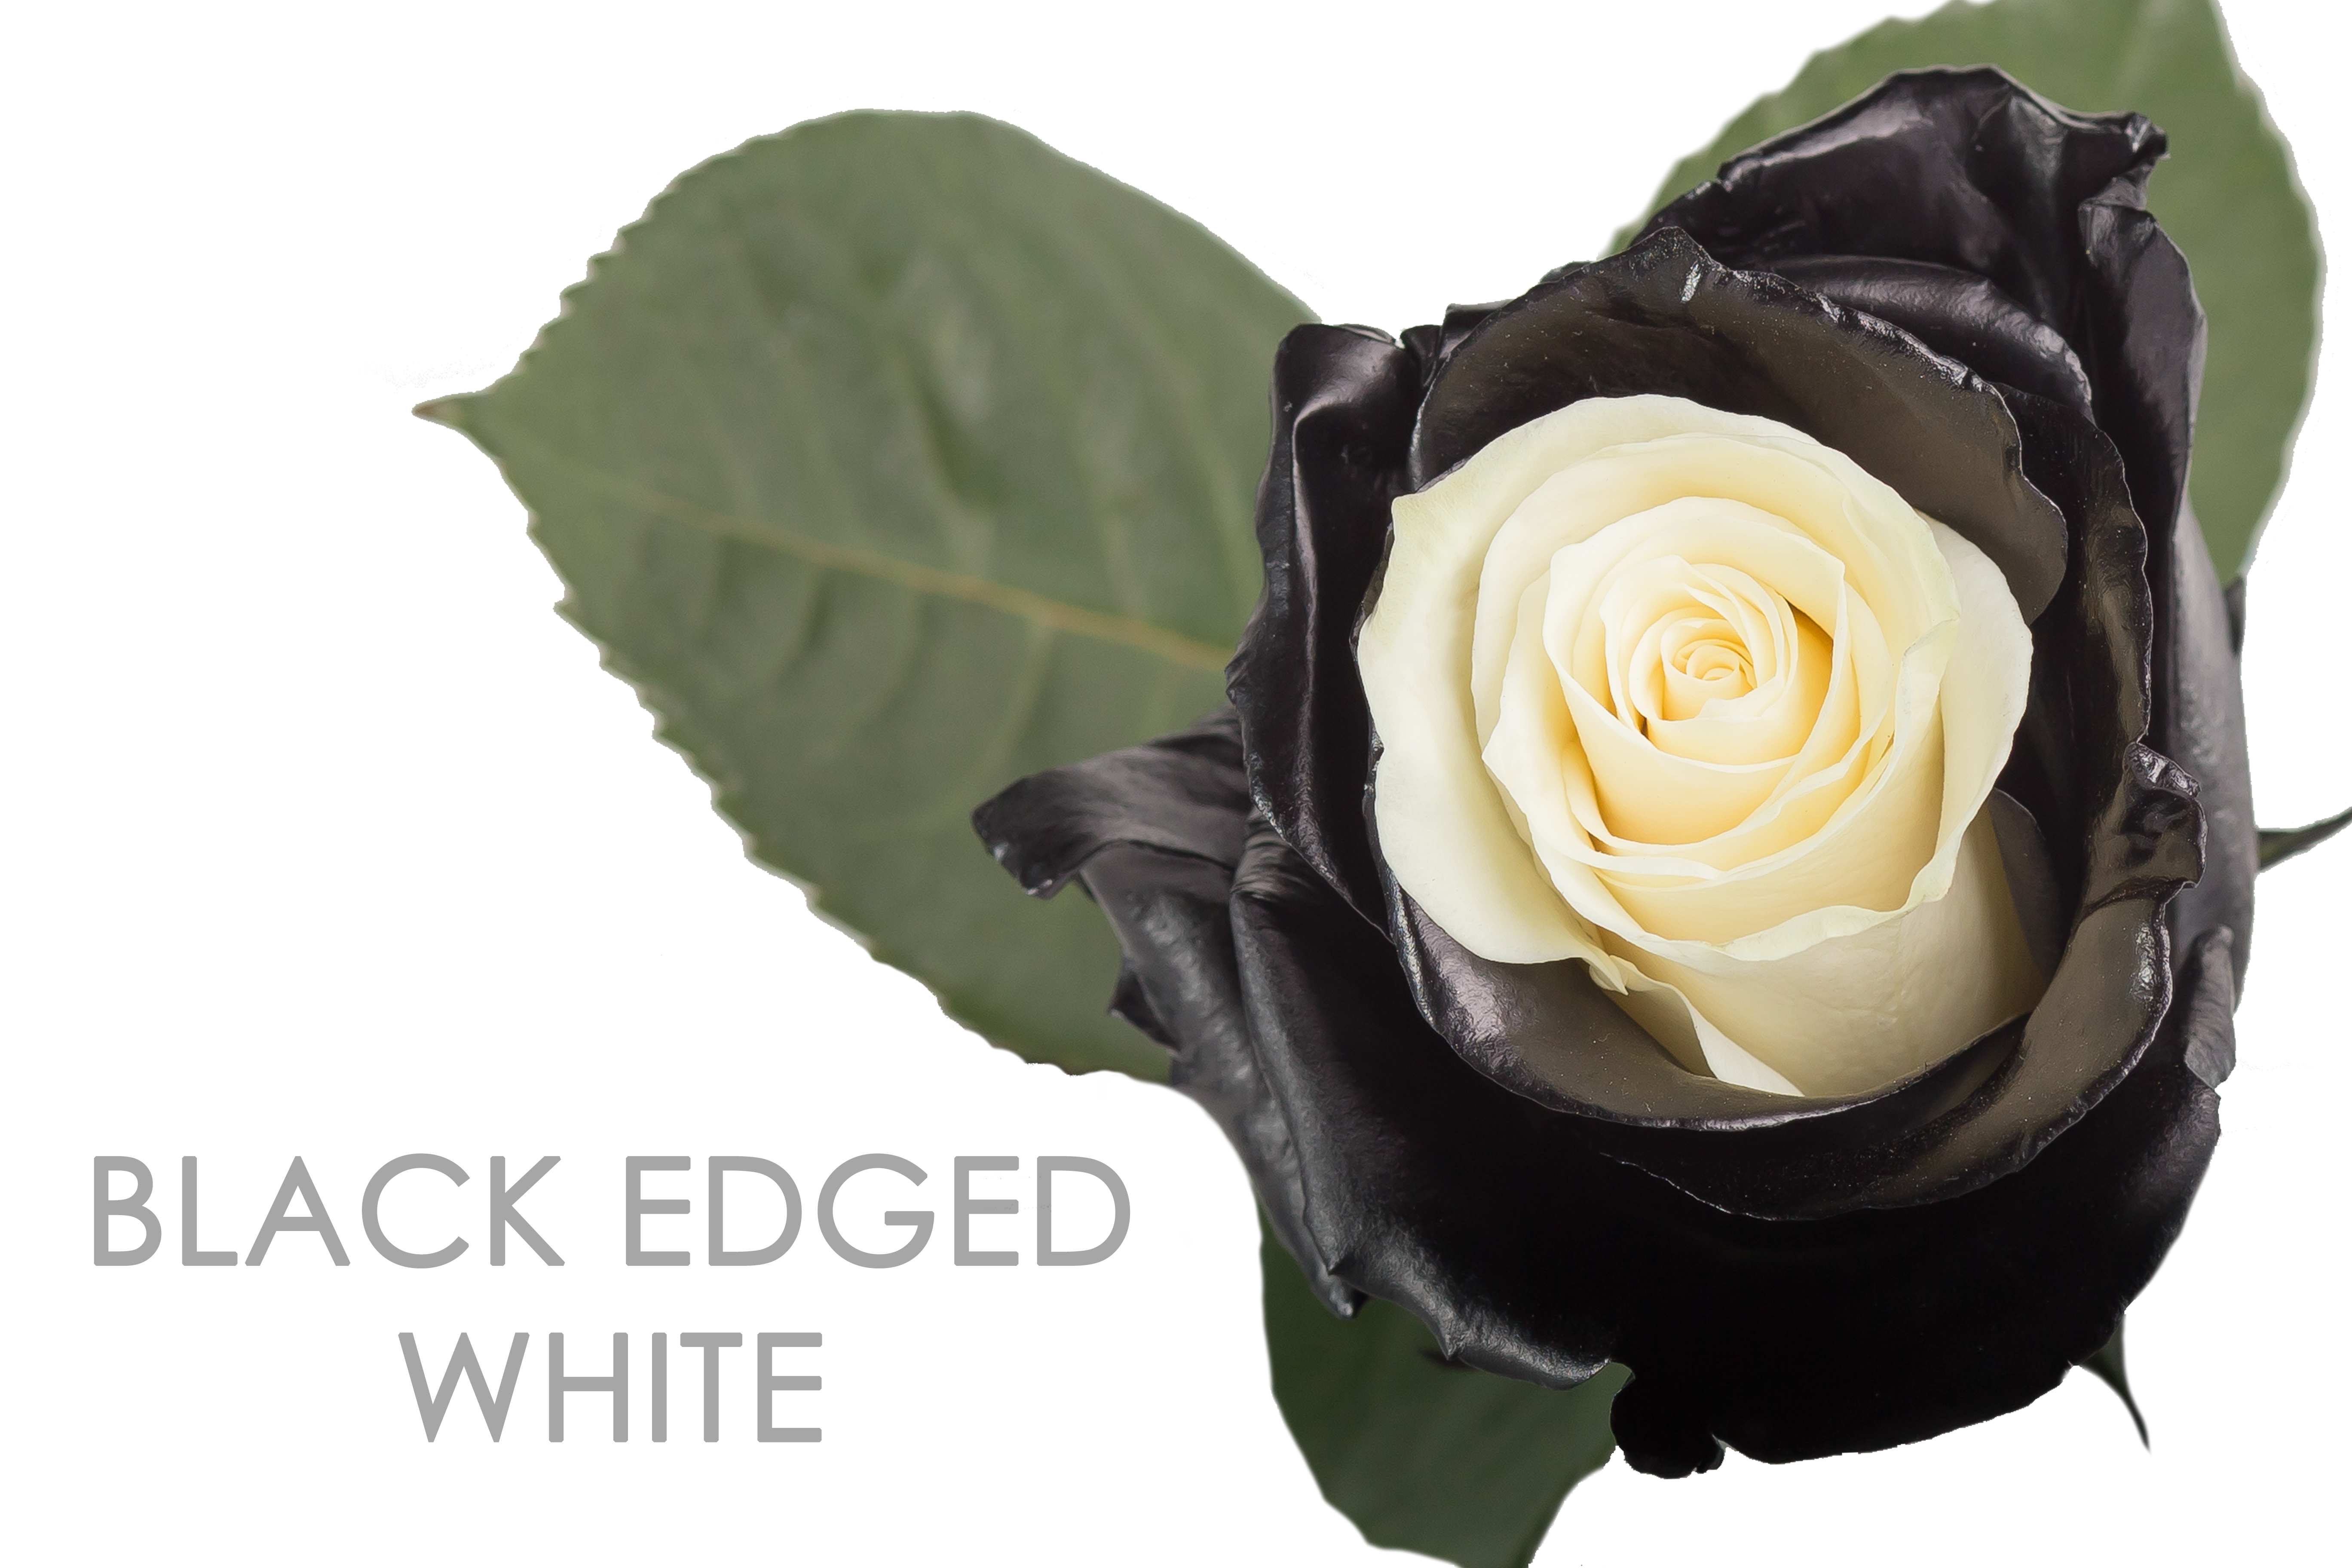 BLACK-EDGED-WHITE-CAPTION-UNIDAD